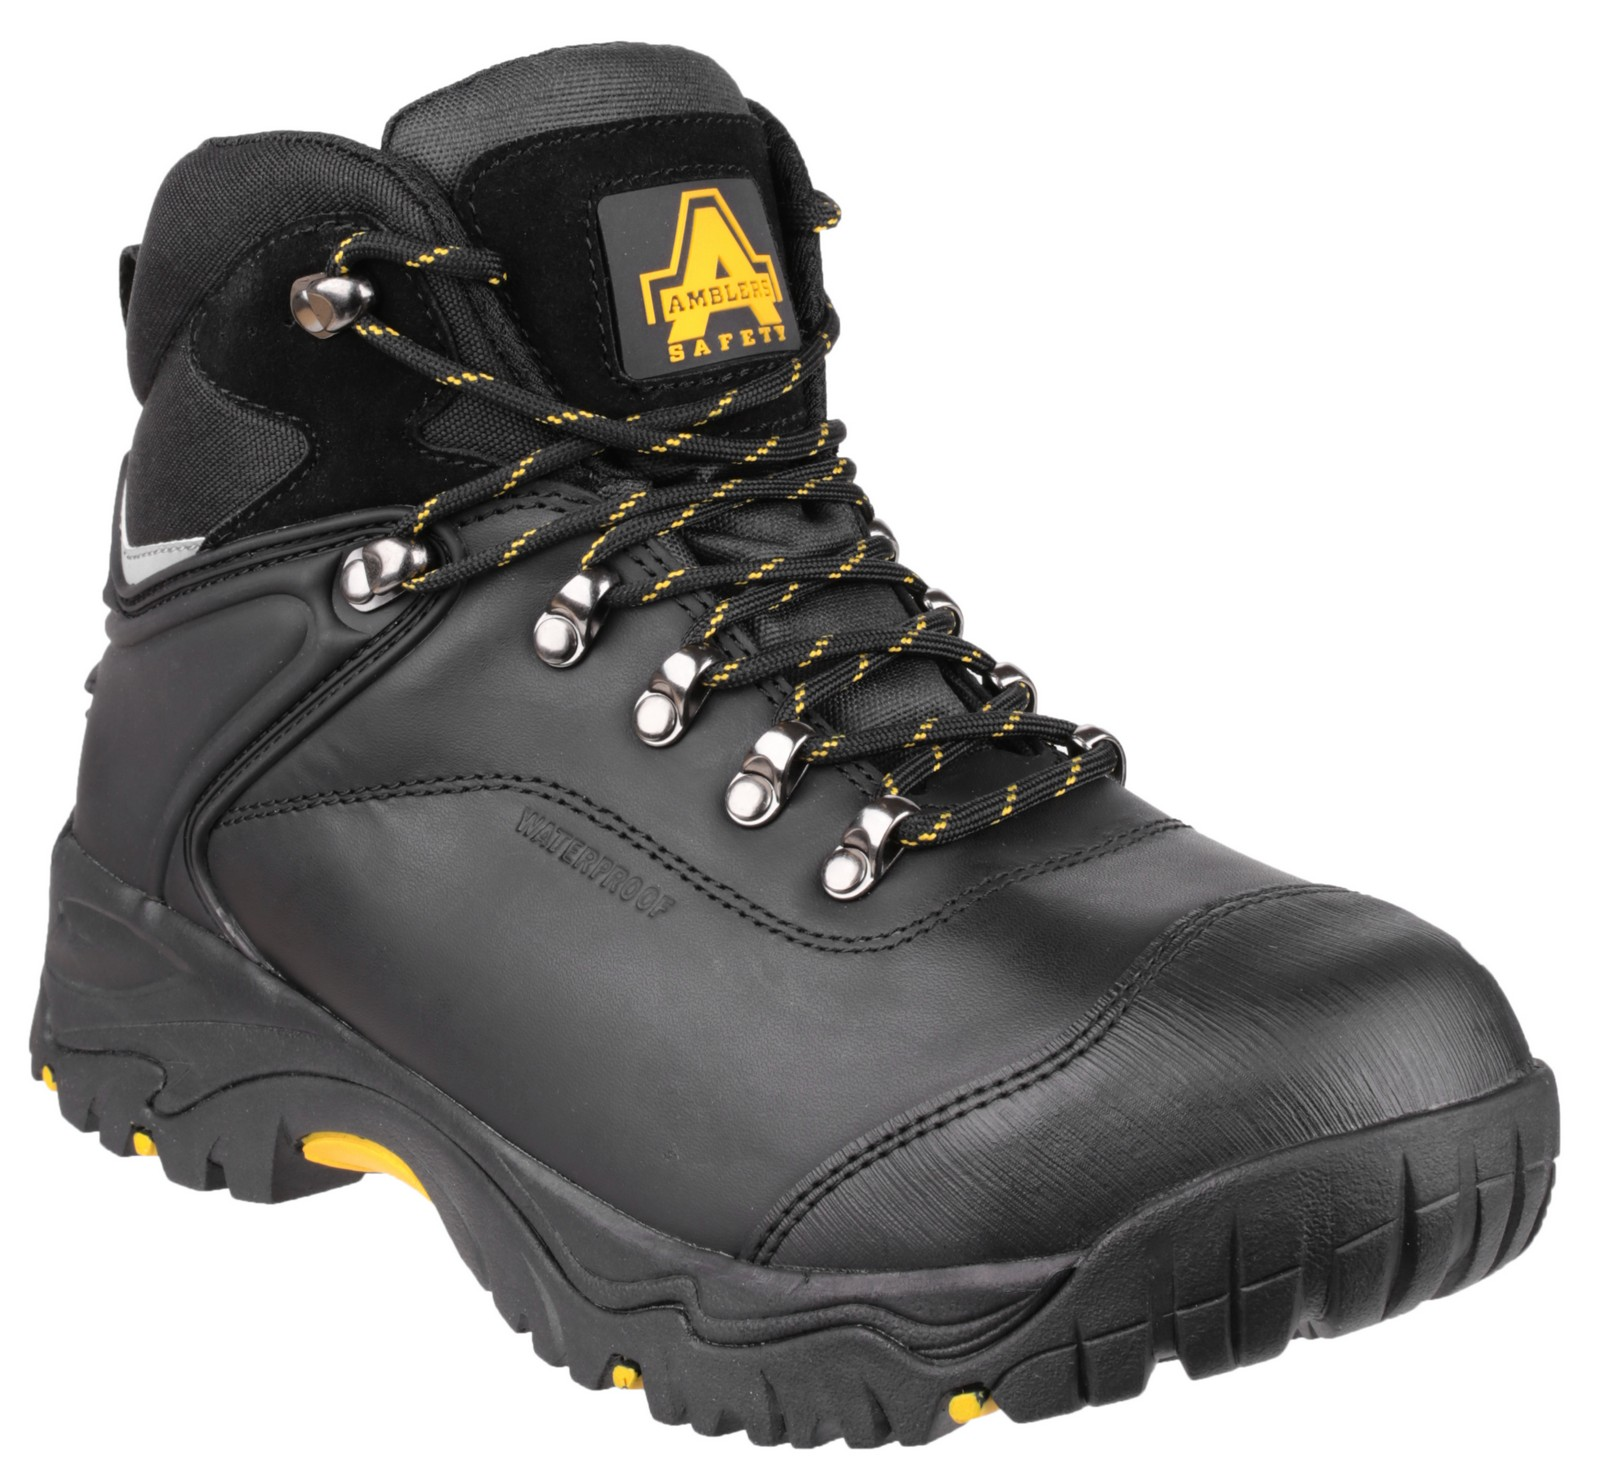 030f906581e Amblers Safety 991 S3 WP Steel Toe-cap and Mid-sole Safety Boots